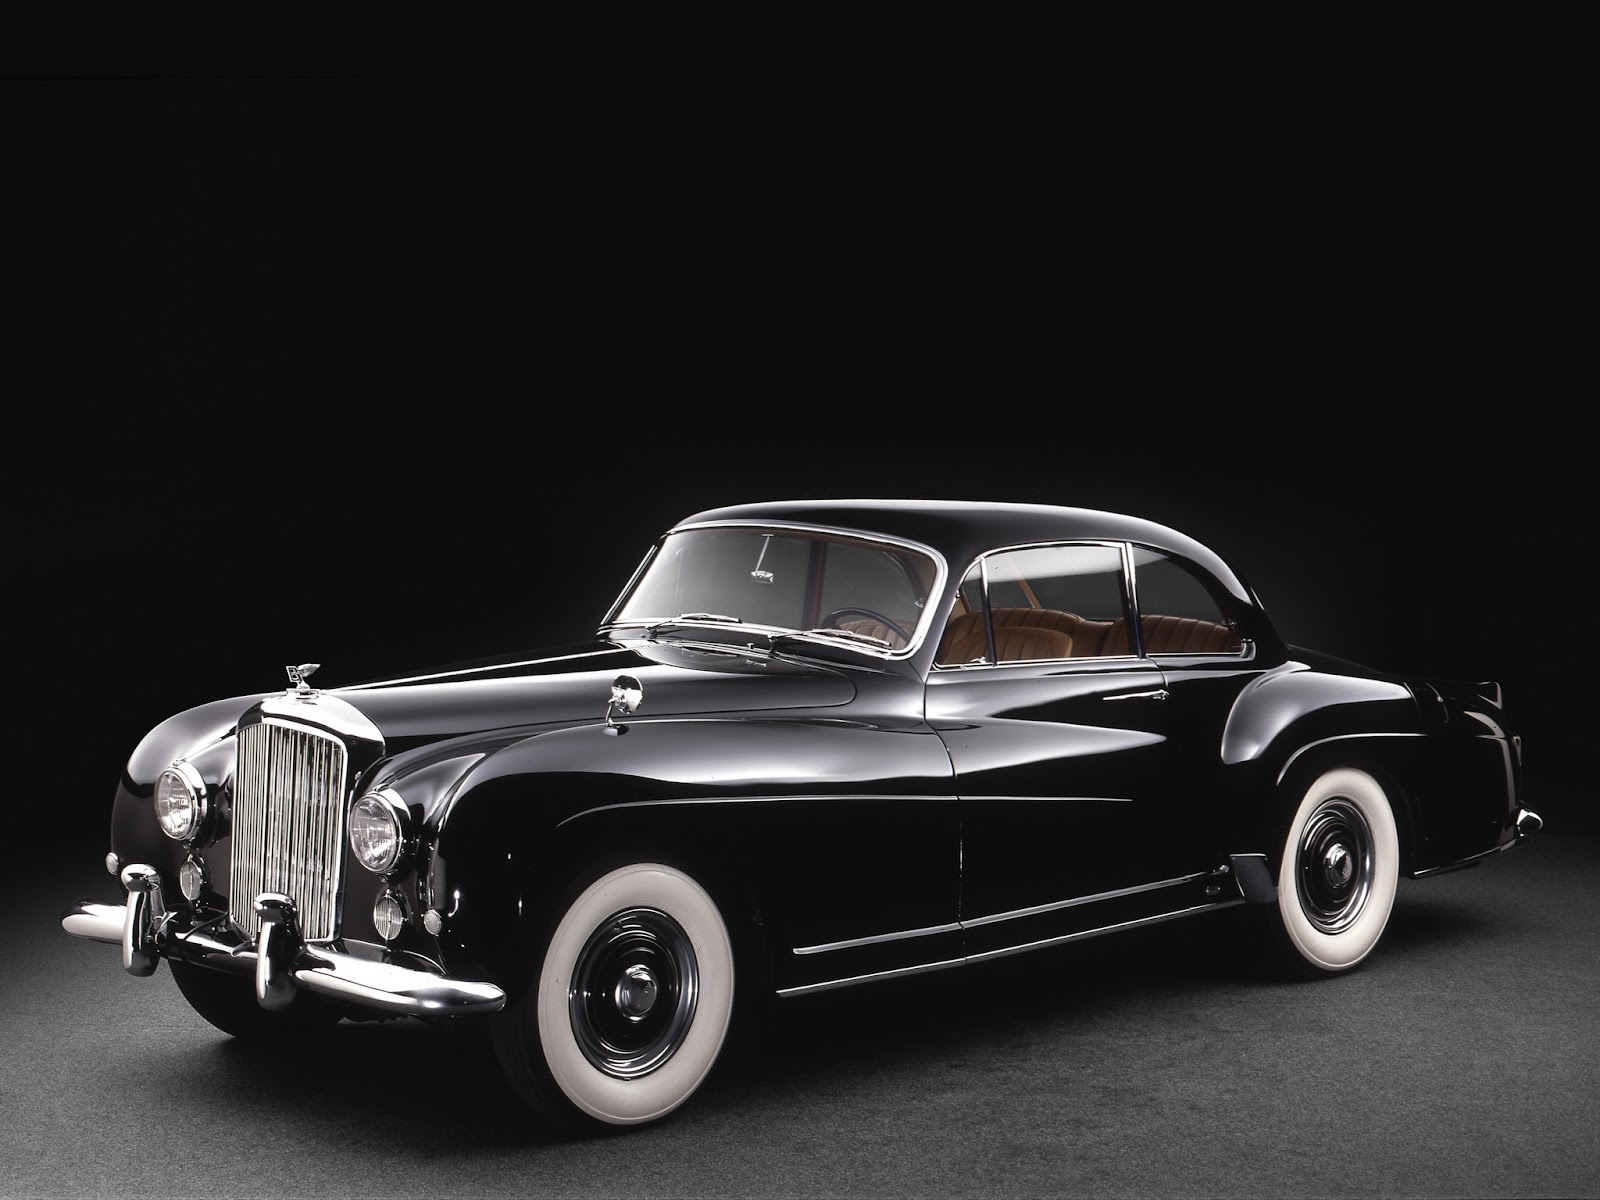 Retro cars bentley r type continental coup by franay 39 1955